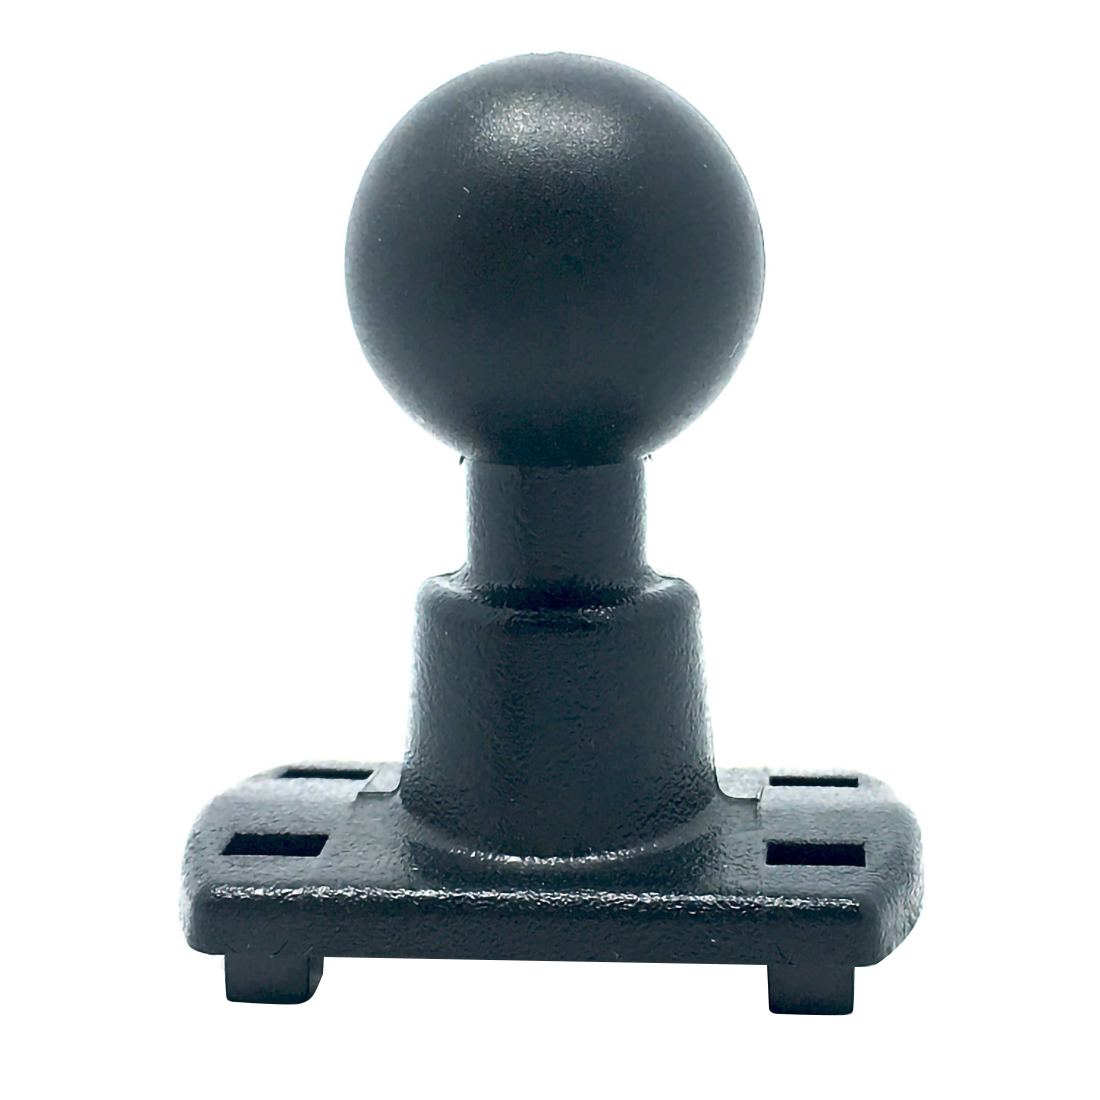 4 Hole Claws AMPS Adaptor Plate With 1 Inch ( 25mm ) Rubber Ball Compatible For Ram Mounts For Cameras For Garmin GPS DVR